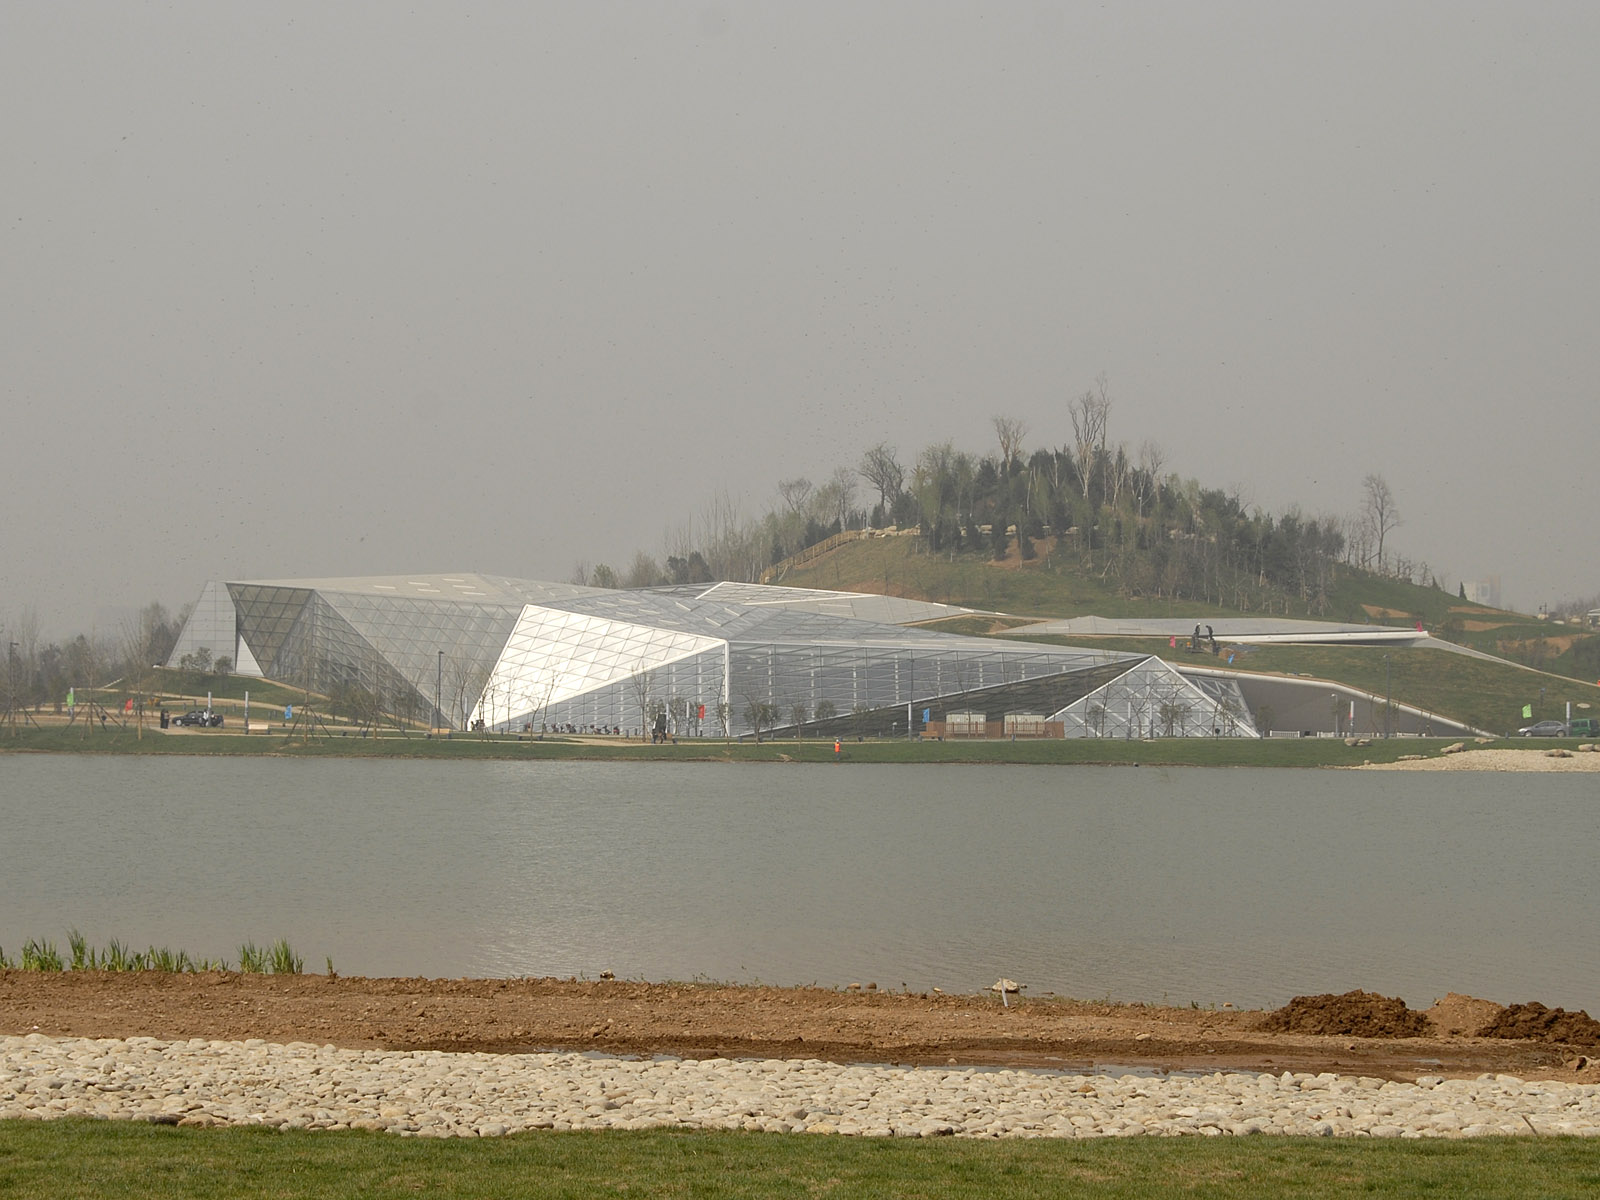 AALU LANDSCAPE URBANISM Xian Expo by Plasmastudio and Groundlab due to open next 28th April